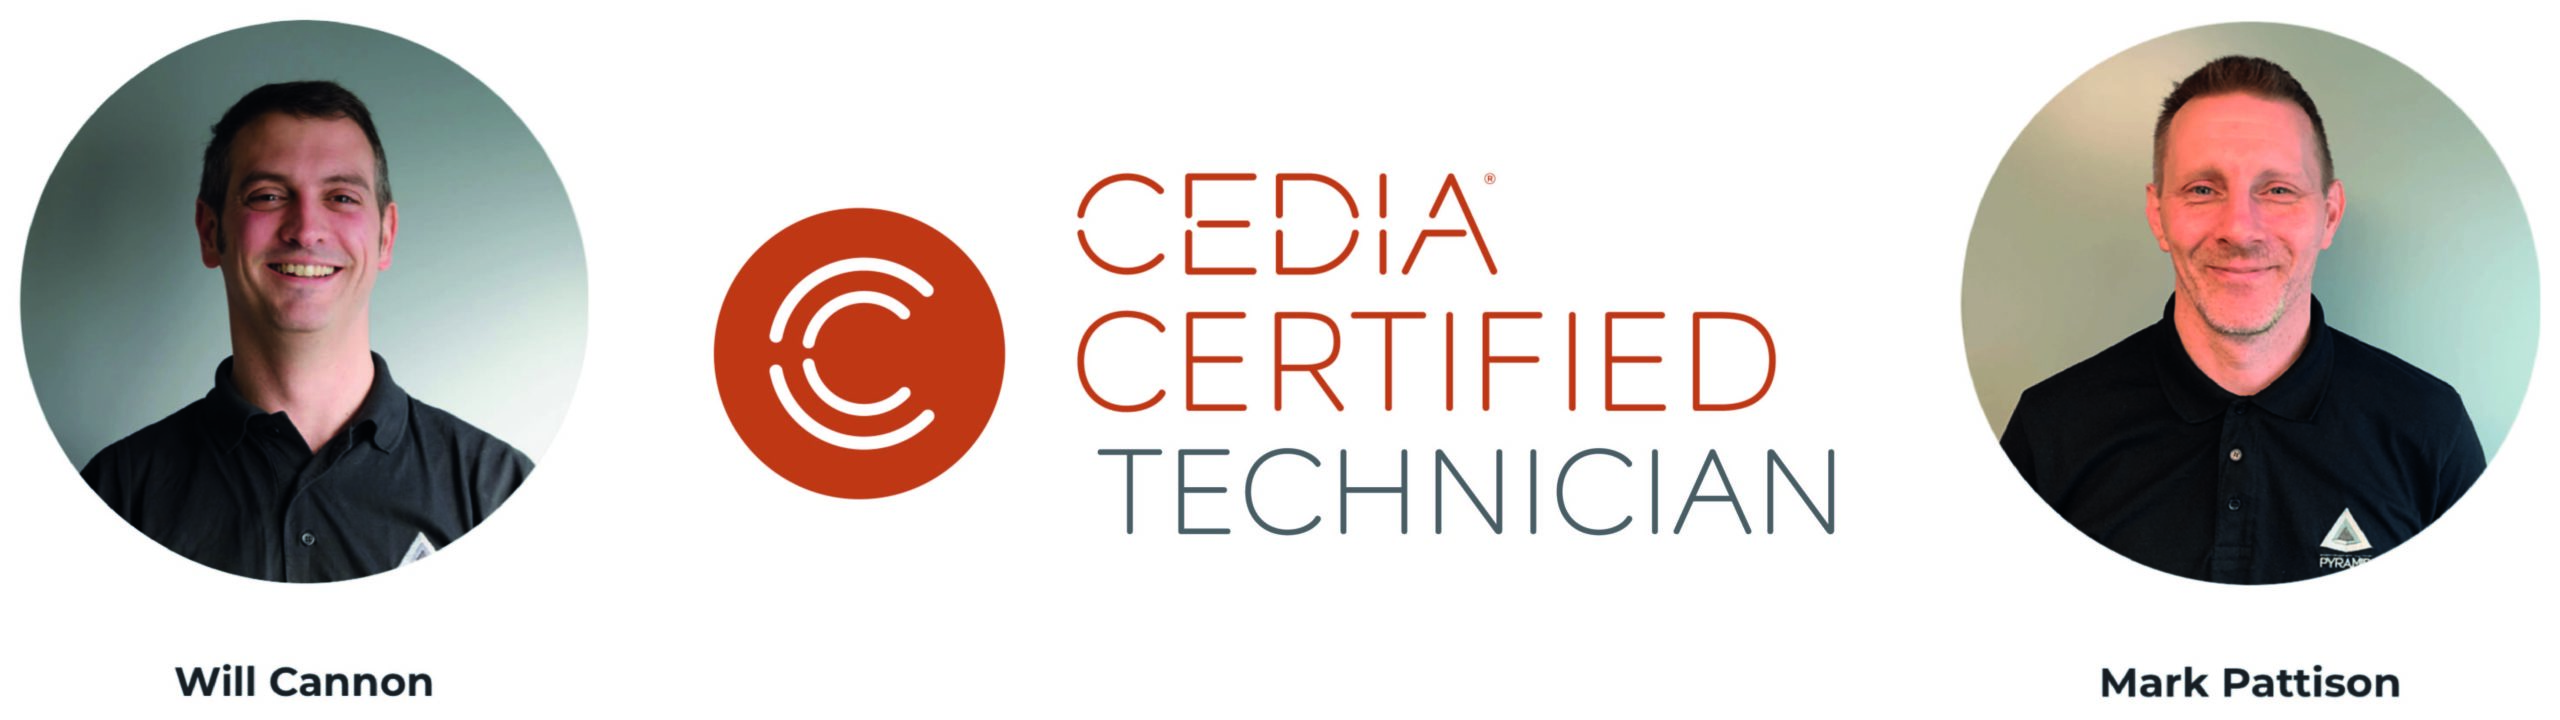 CEDAI Certified Technician